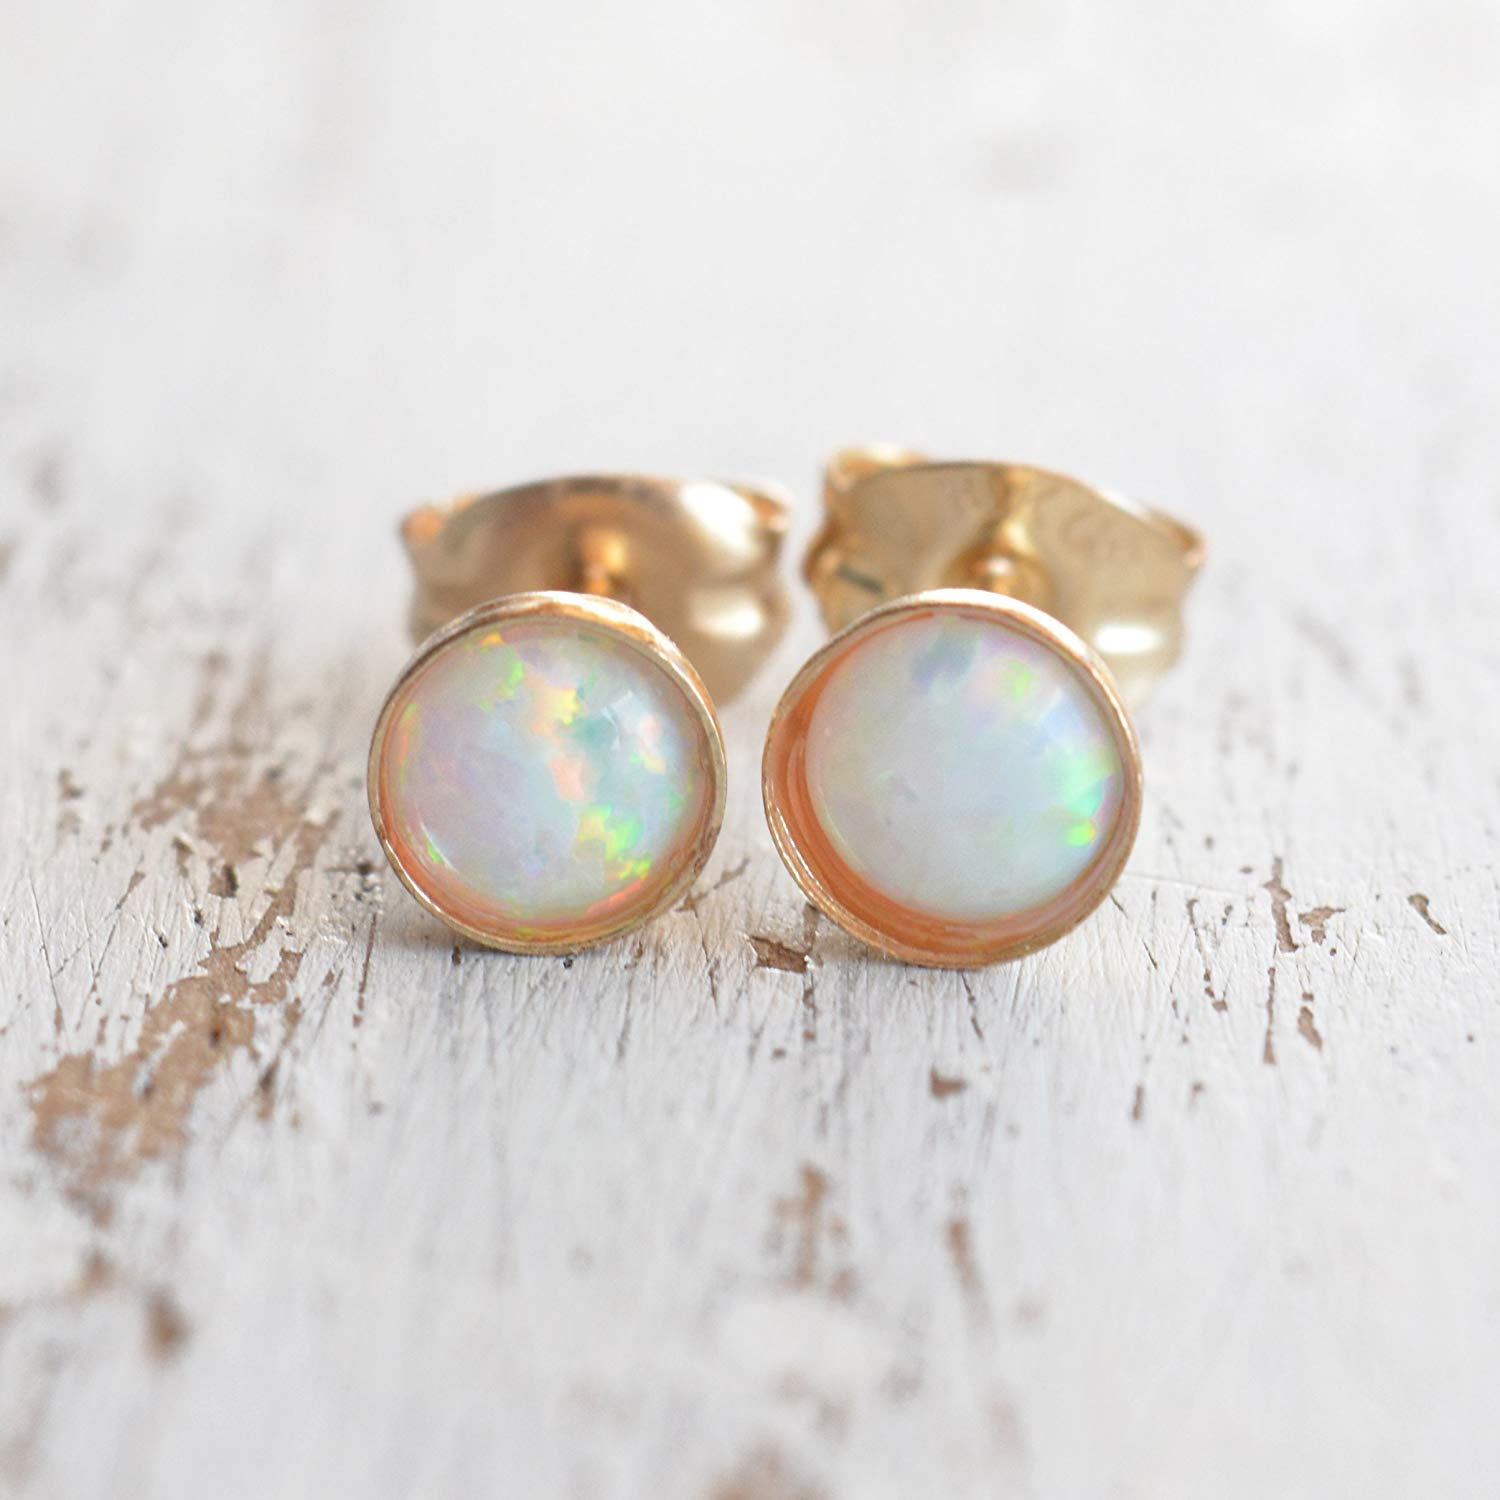 Get Quotations Opal Earrings Stud 14k Gold Filled 4mm White Stone